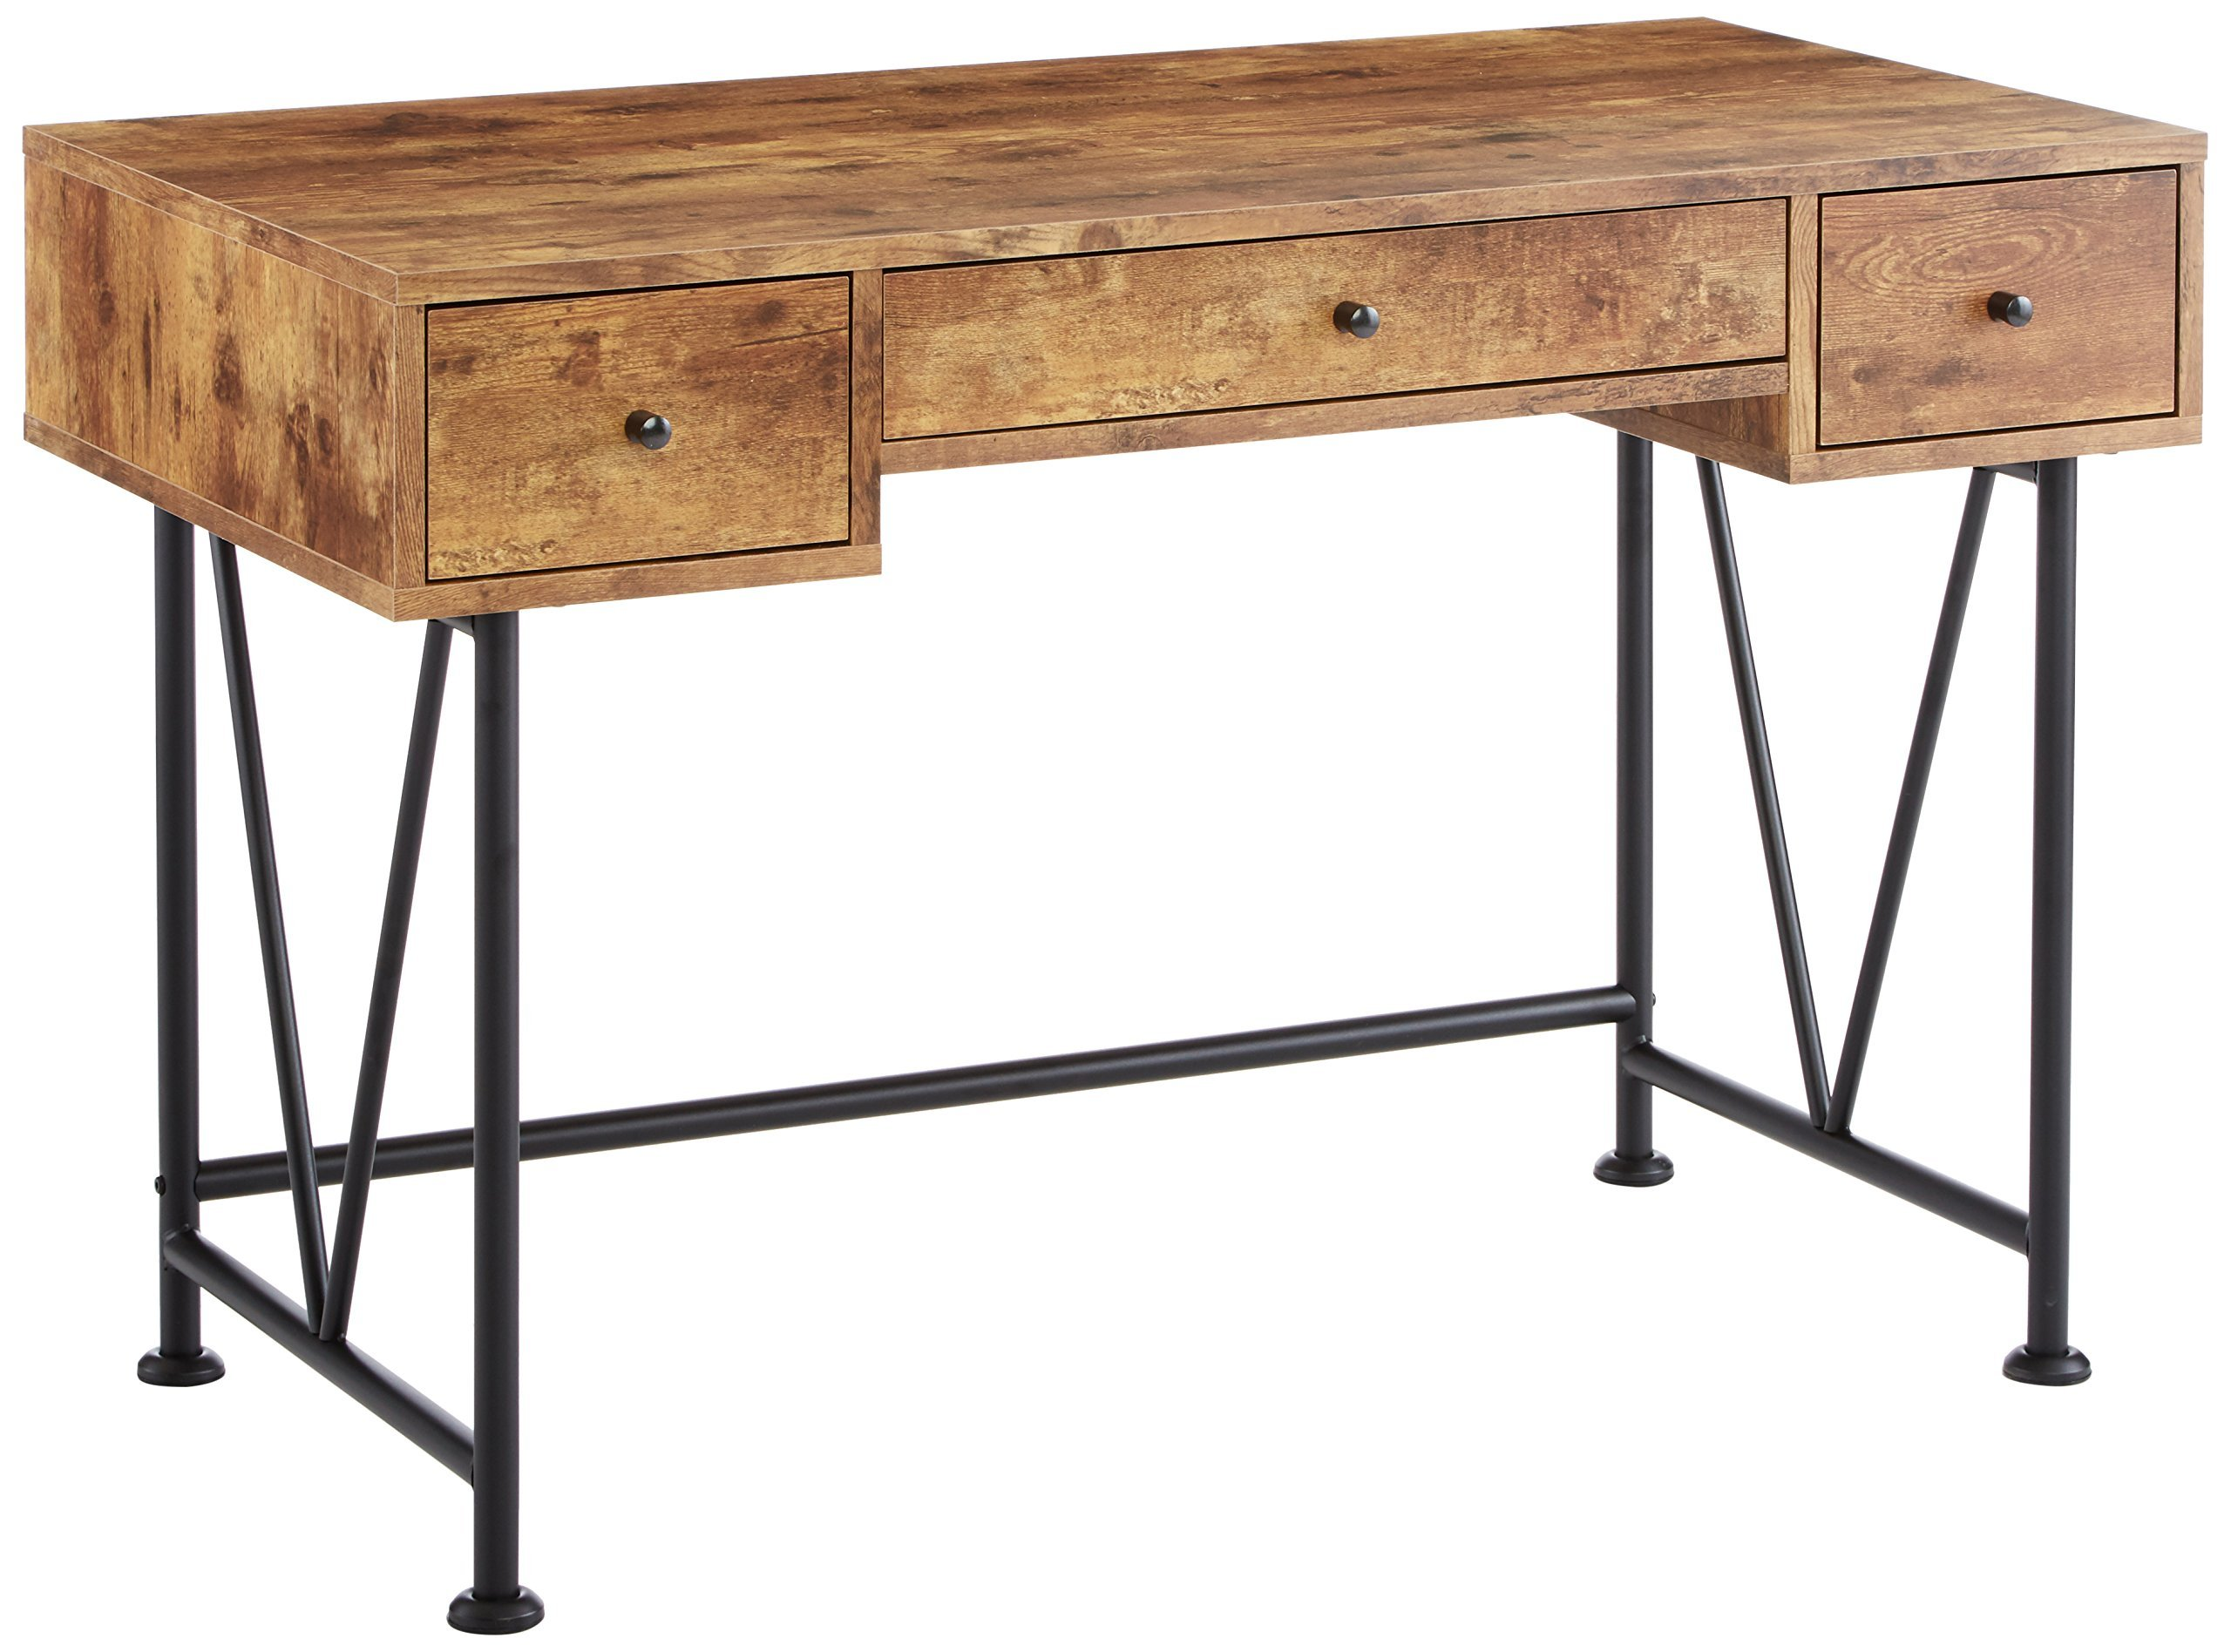 Glavan 3-Drawer Writing Desk with Antique Nutmeg and Black by Coaster Home Furnishings